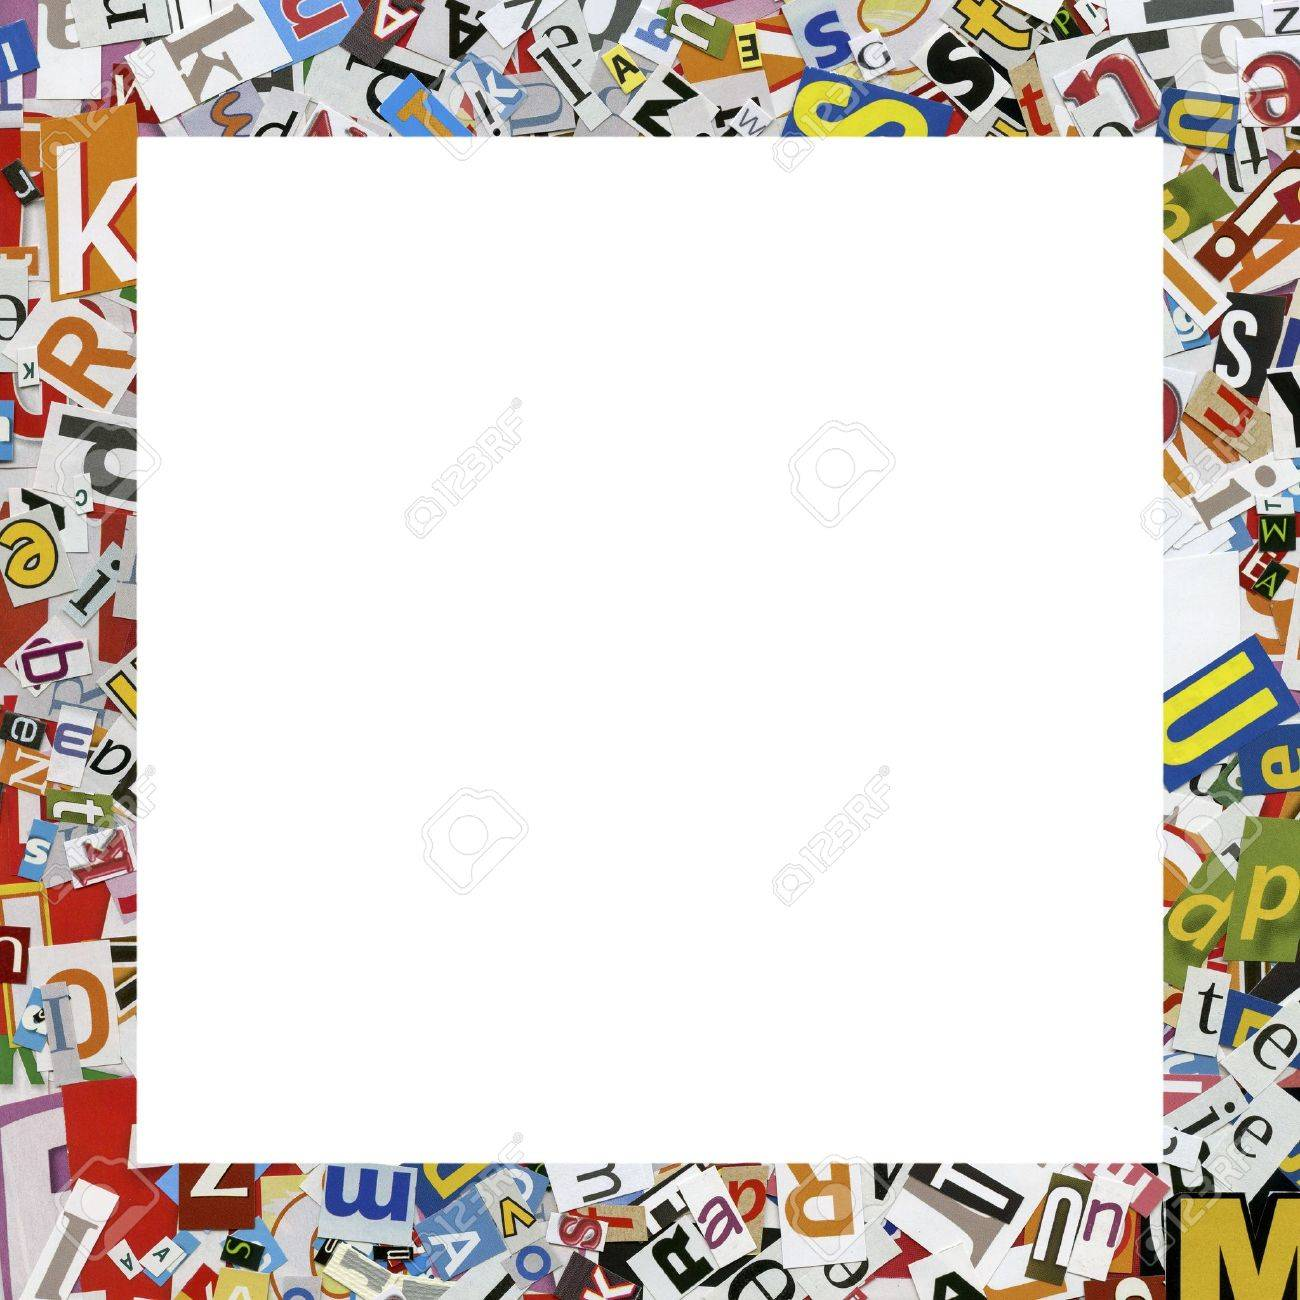 Designed Frame. Collage Made Of Newspaper Clippings. Stock Photo ...